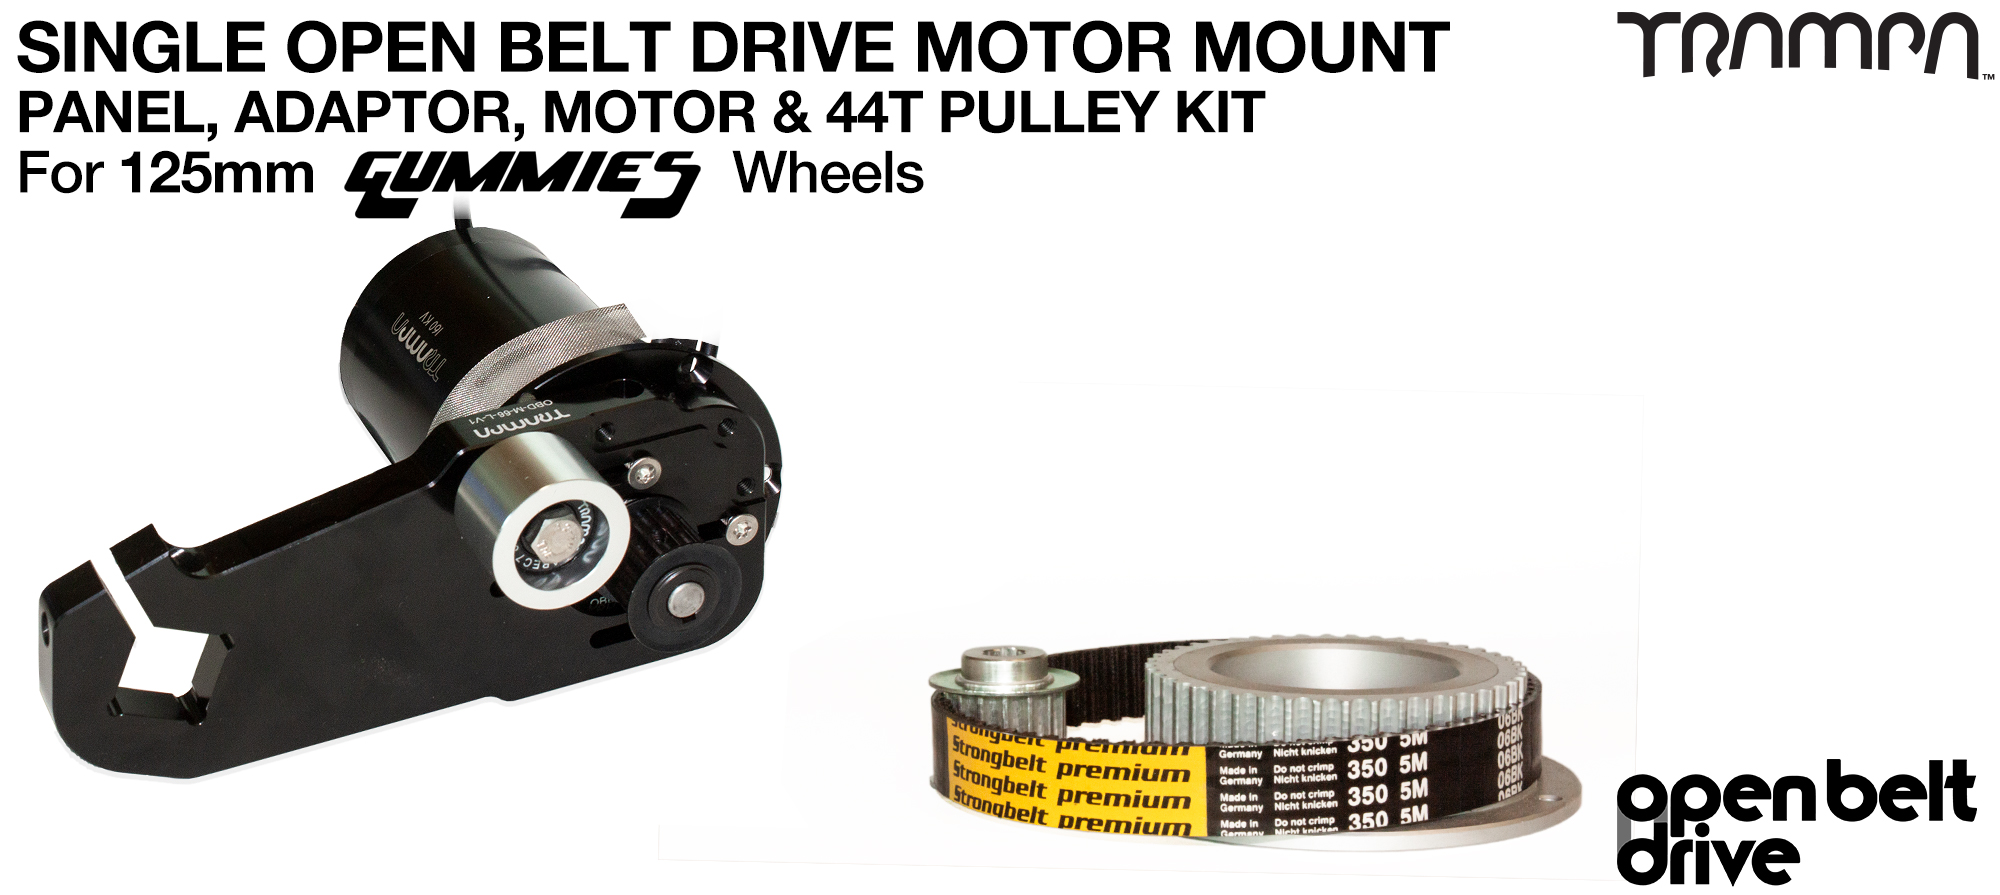 66T OBD Motor Mount with 44T Pulley kit & custom Motor - SINGLE